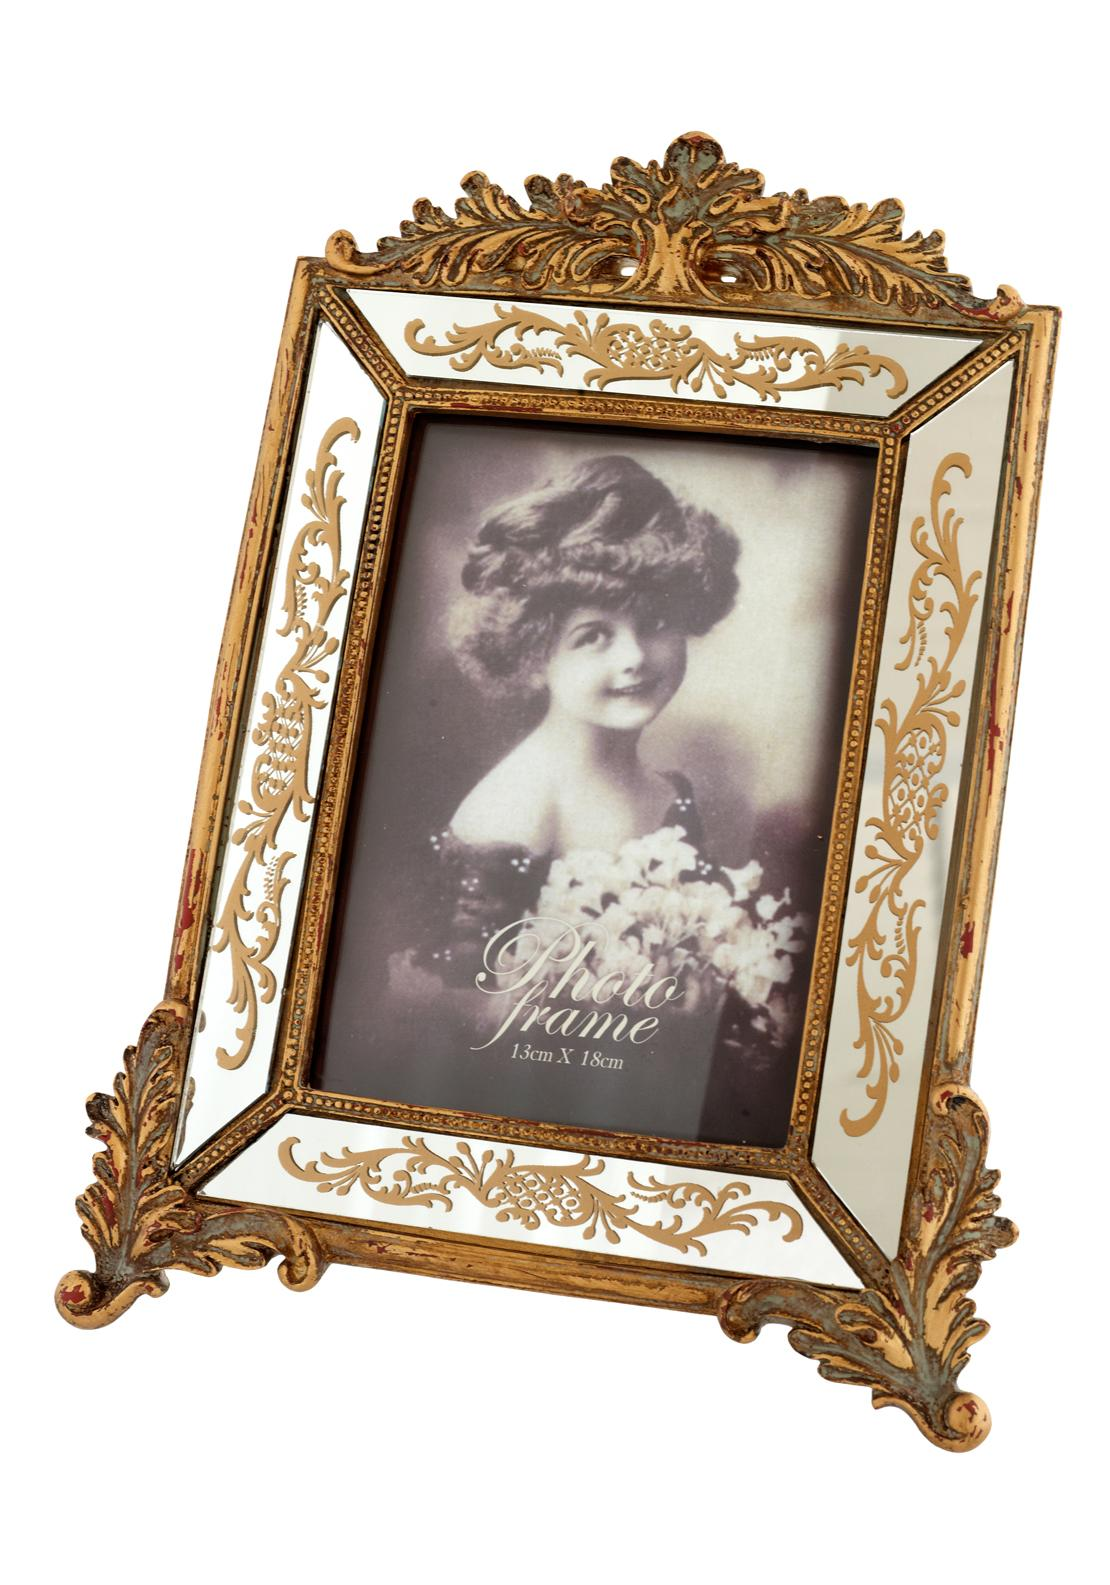 Mindy Brownes Byron Photo Frame, 5 x 7 inches